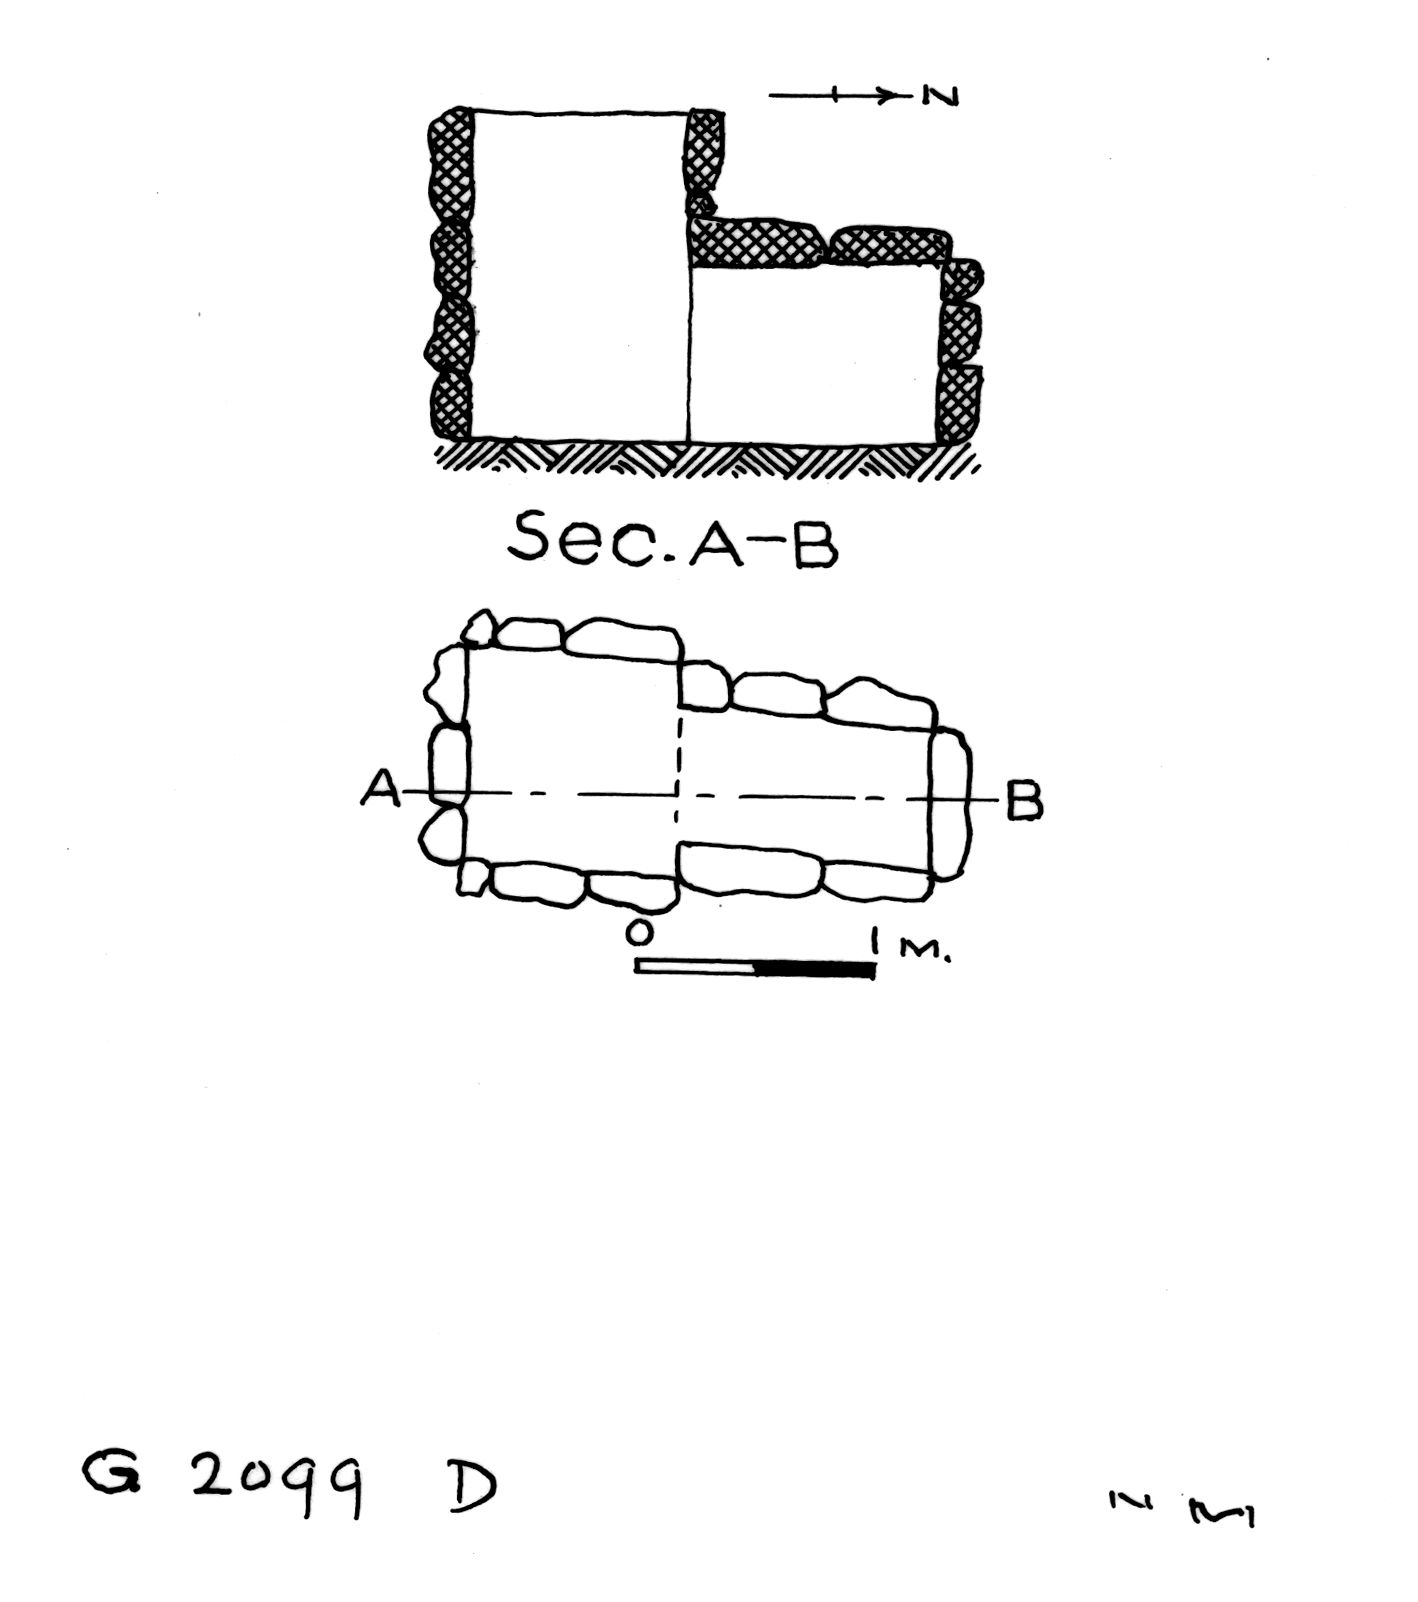 Maps and plans: G 2099, Shaft D